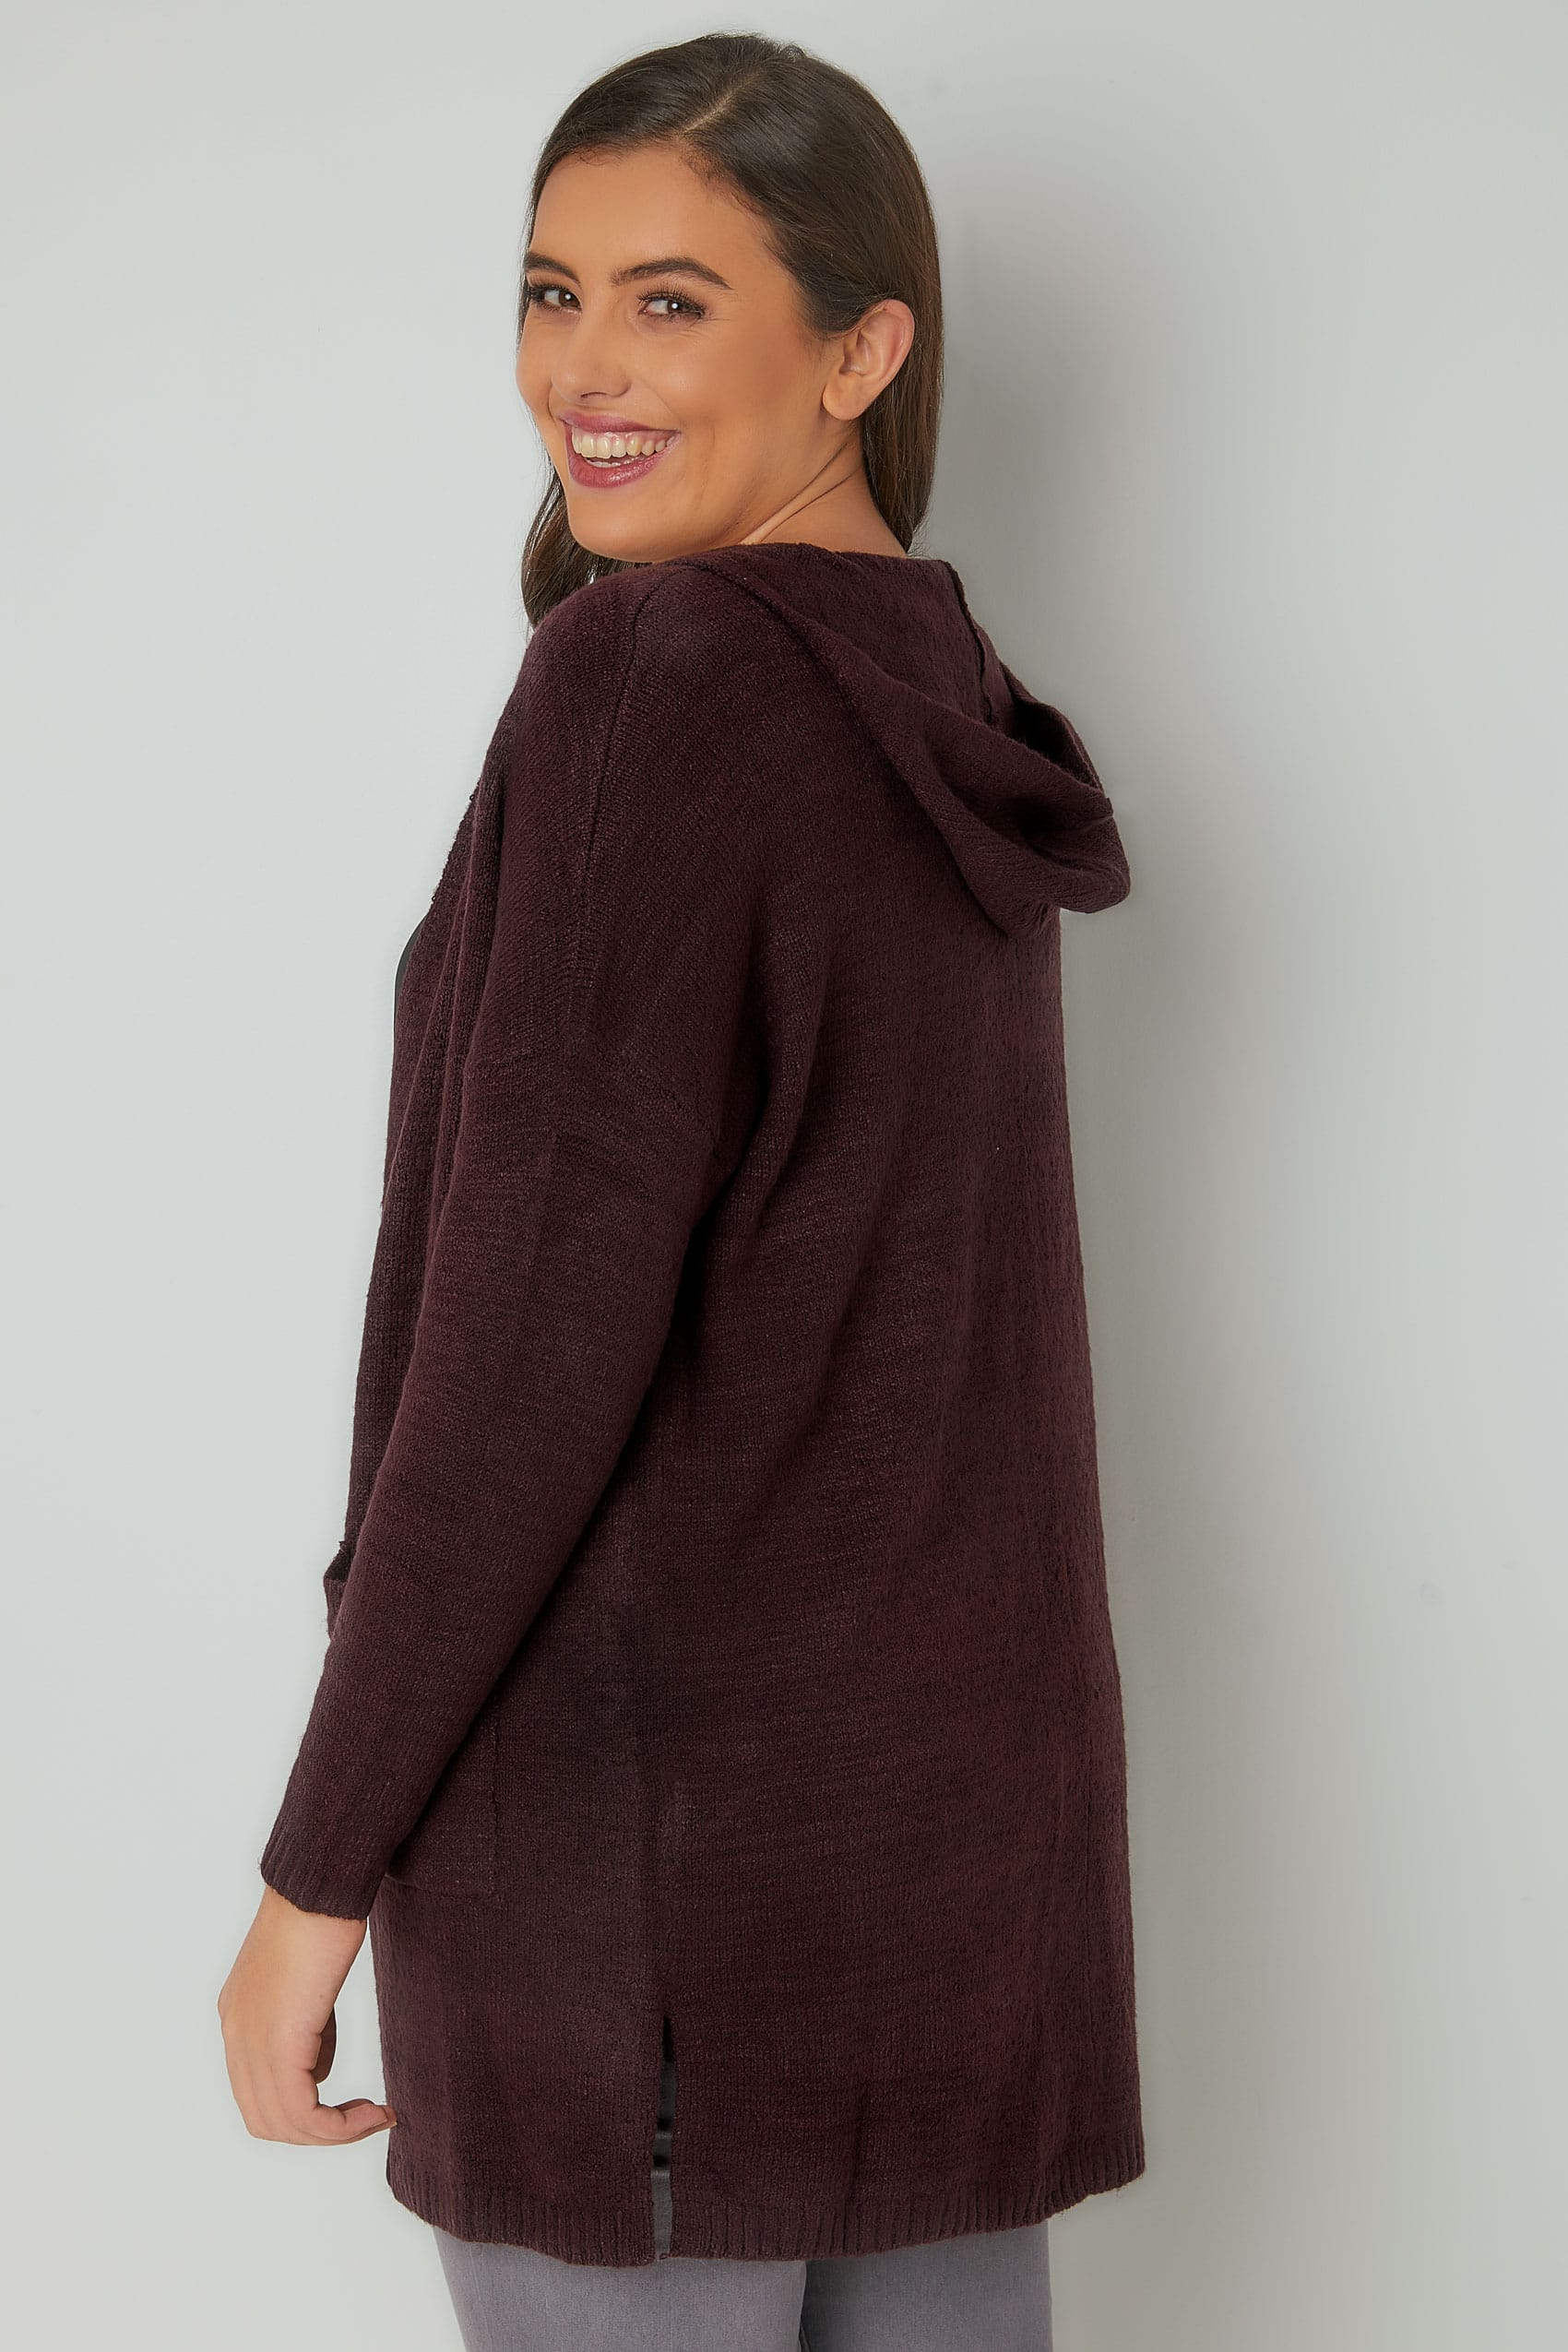 Dark Purple Hooded Cardigan With Pockets, Plus size 16 to 36